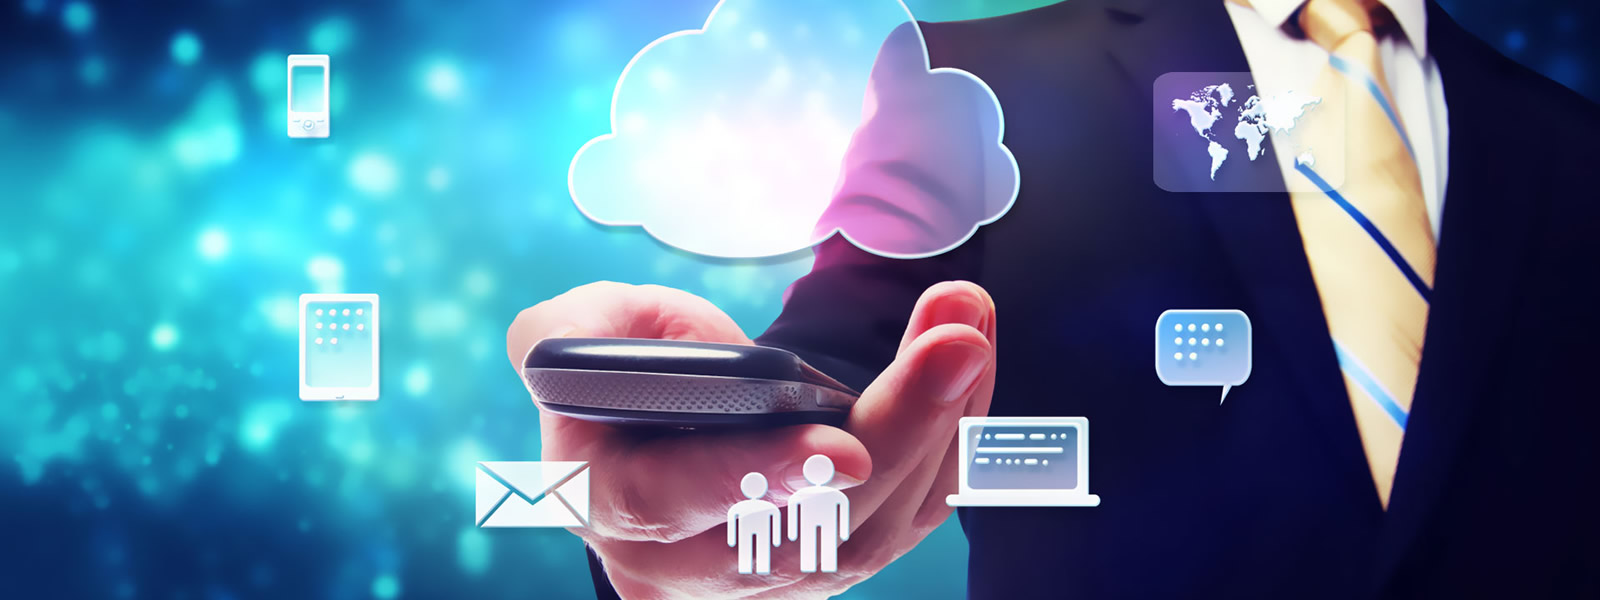 Extend your organization's Communications enable a BYOD solution by using your famous sip client app, or save money using our hosted voice service – vPBX puts business-class communications tools in your pocket so no matter where you are in the world, you stay connected.